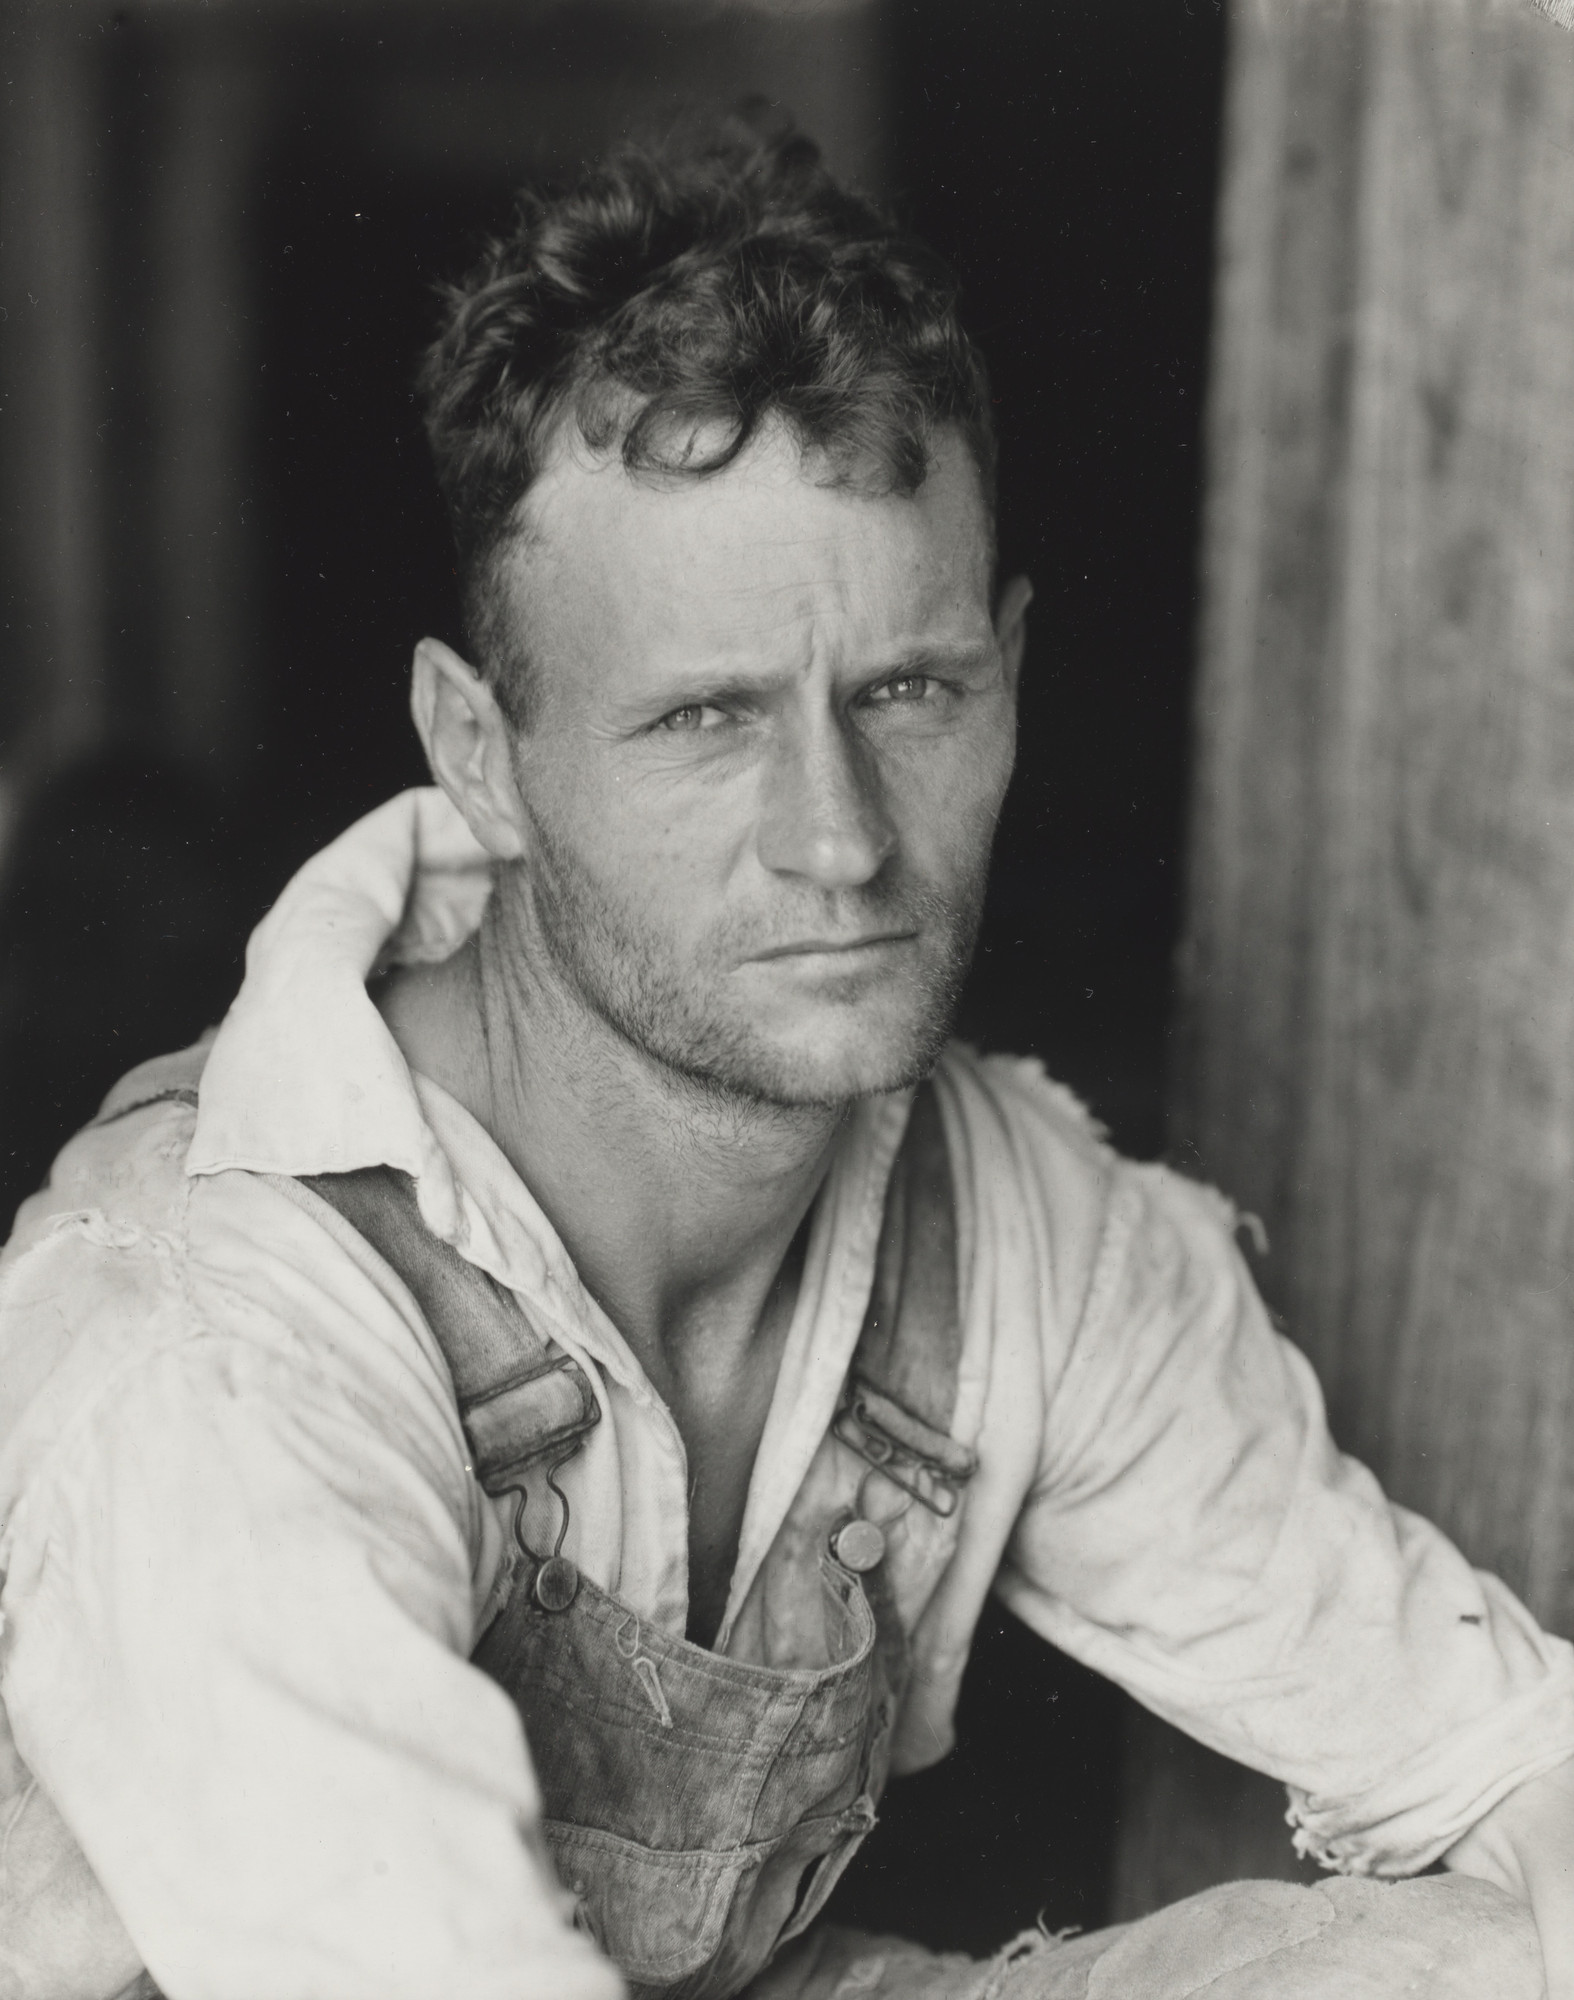 Walker Evans. Sharecropper, Hale County, Alabama. 1936